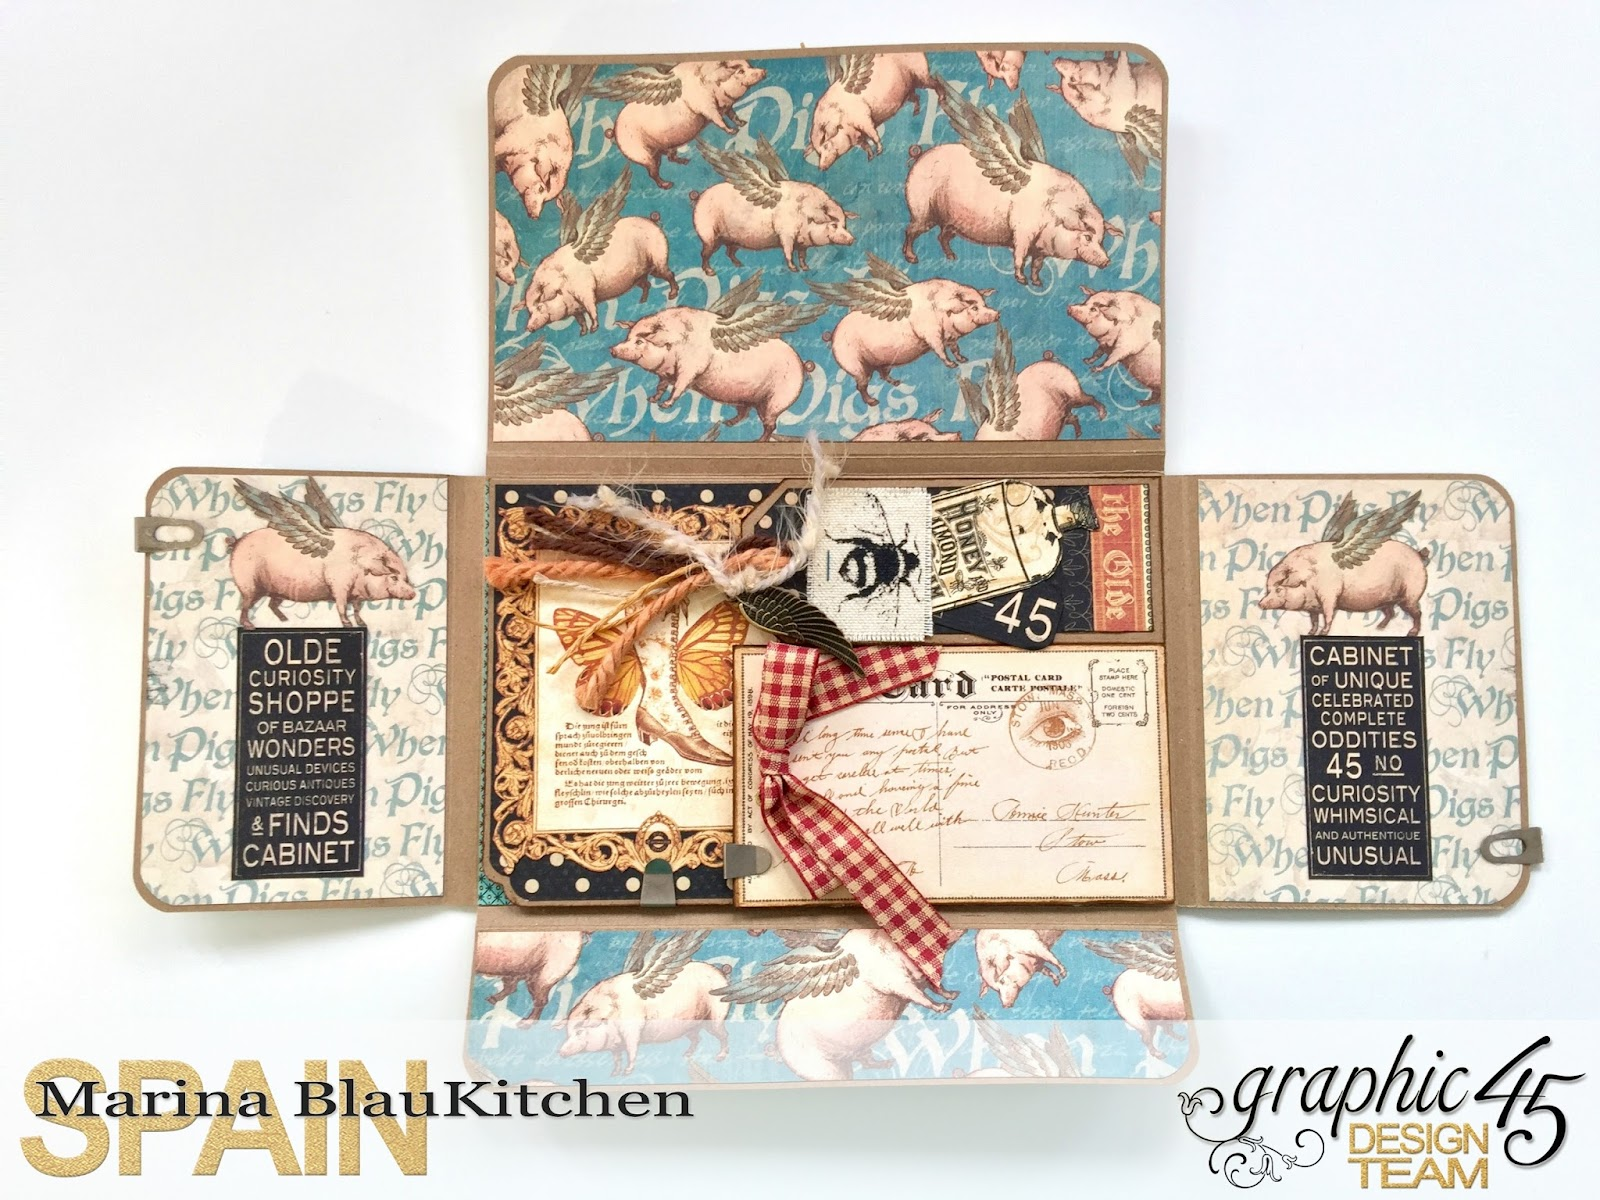 Olde Curiosity Shoppe Flip Flap Mini Album by Marina Blaukitchen Product by Graphic 45 photo 5.jpg